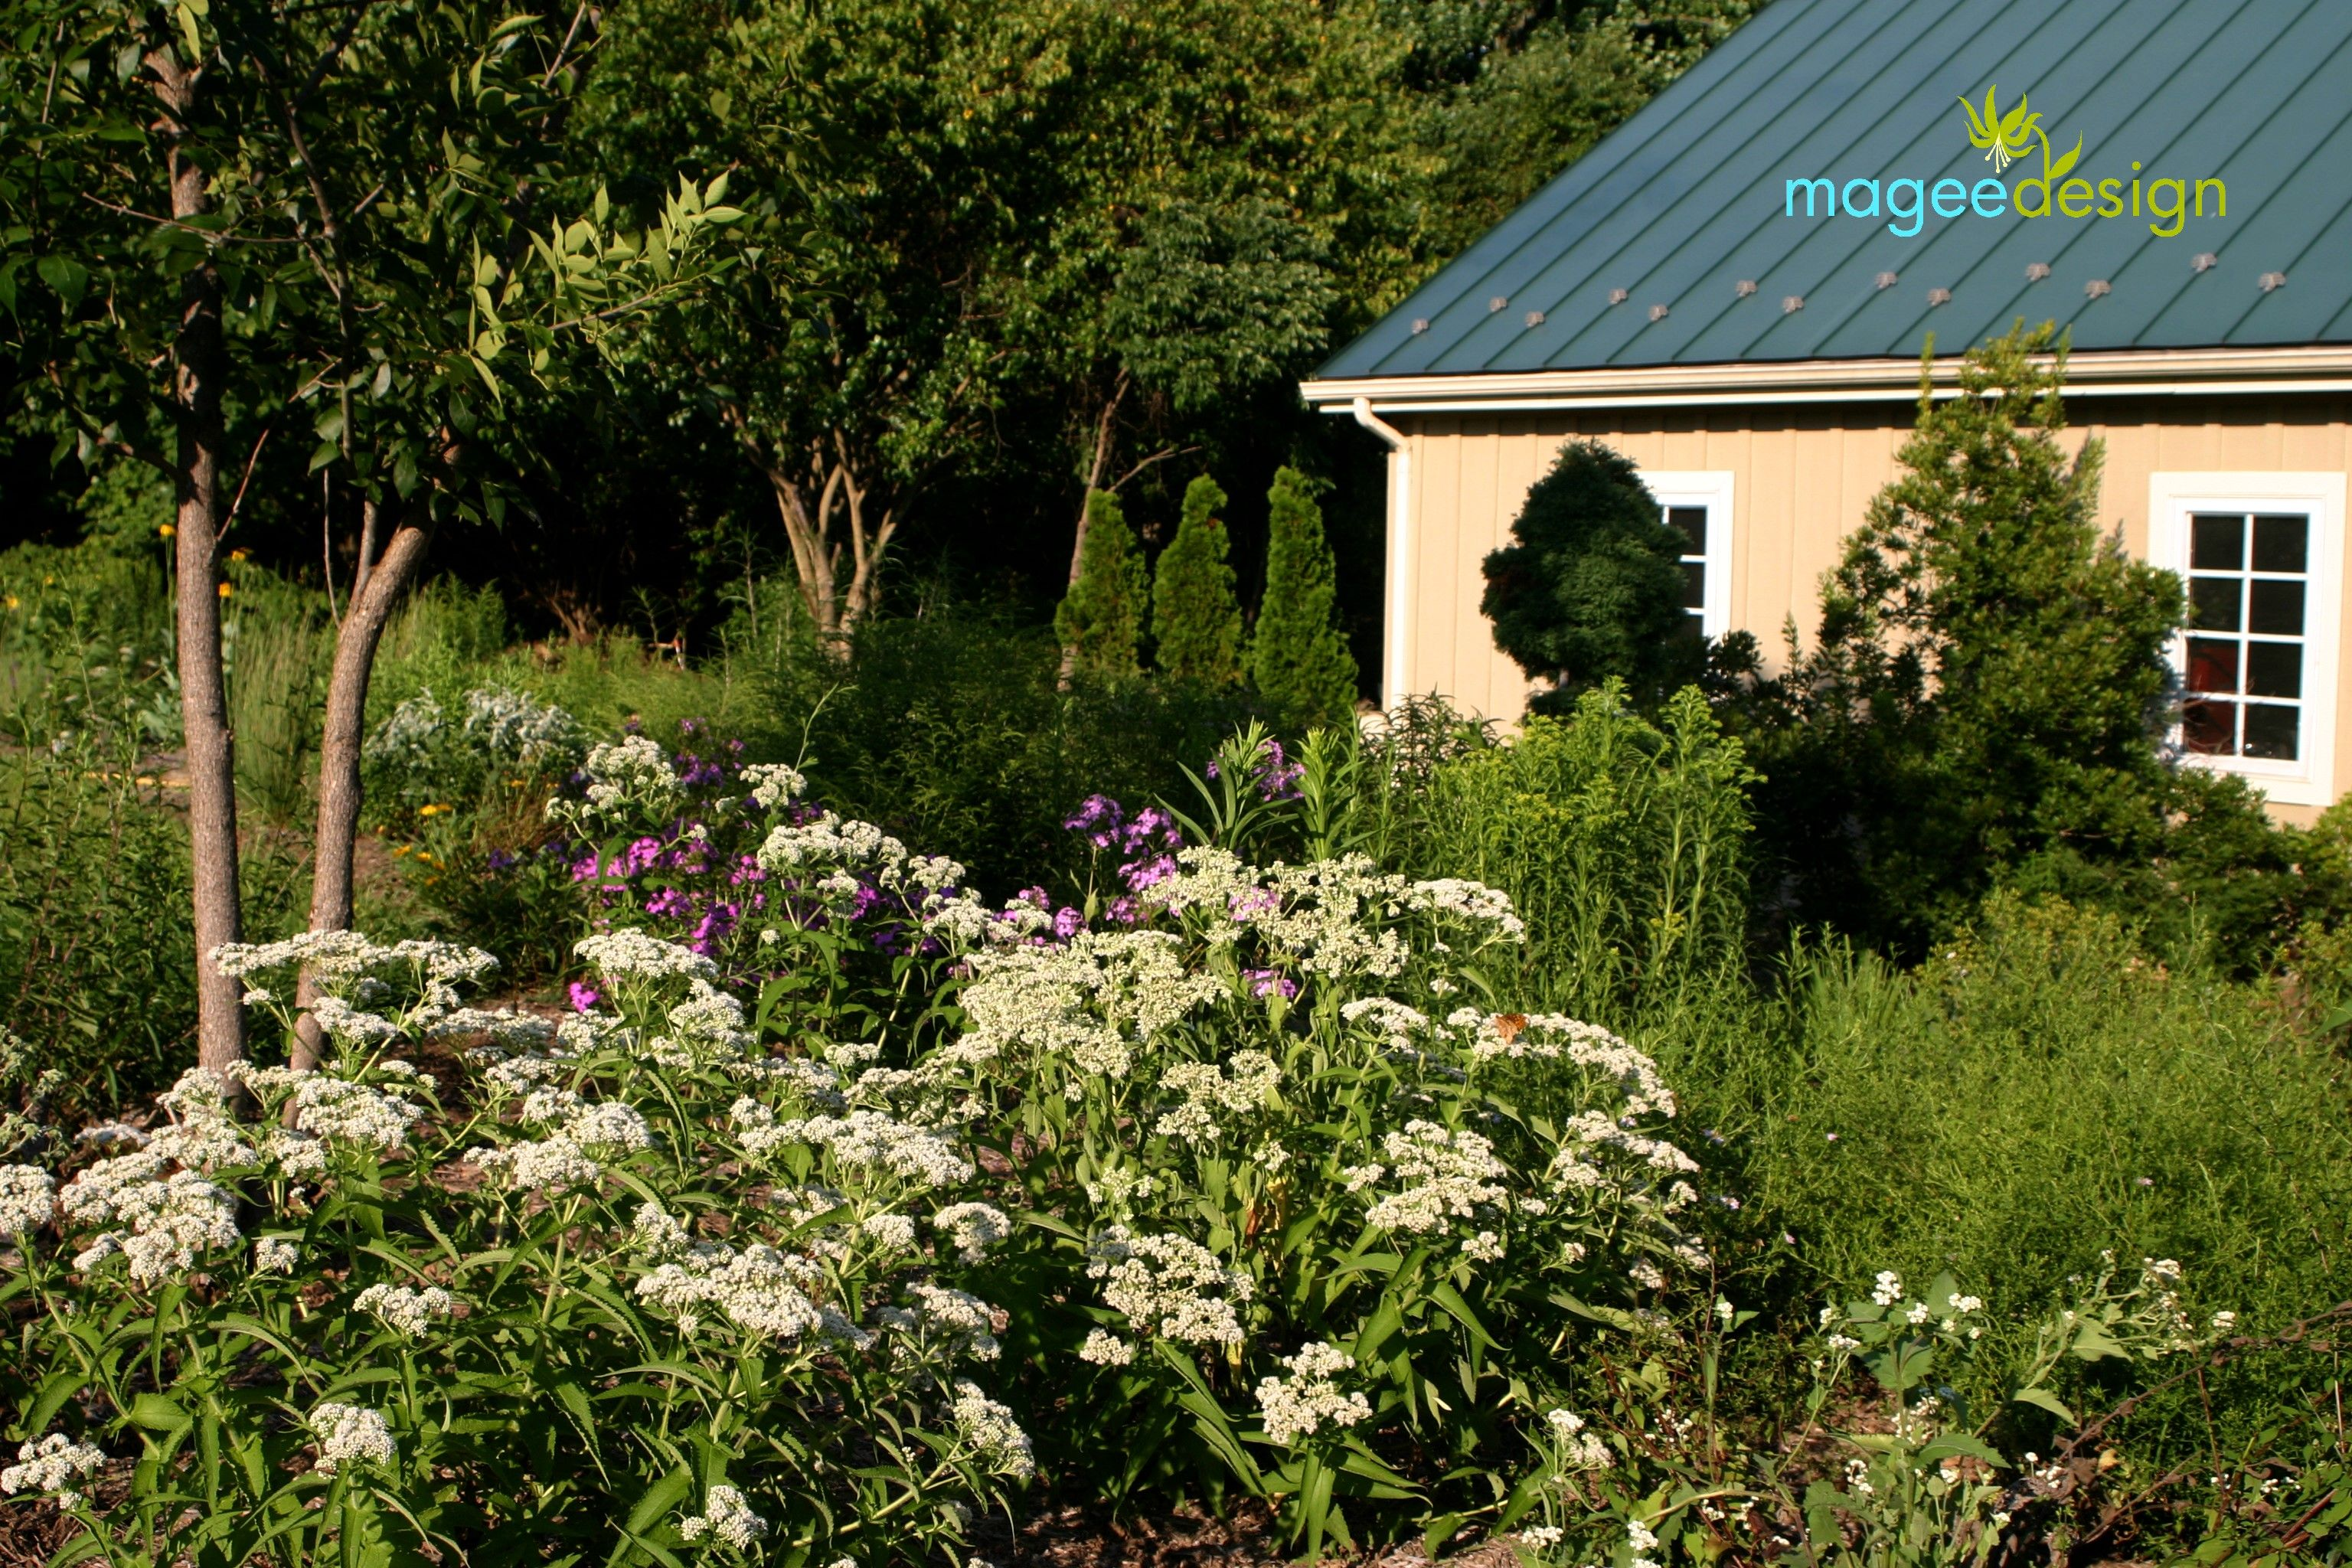 Native plant garden designed by Magee Design at an animal rescue